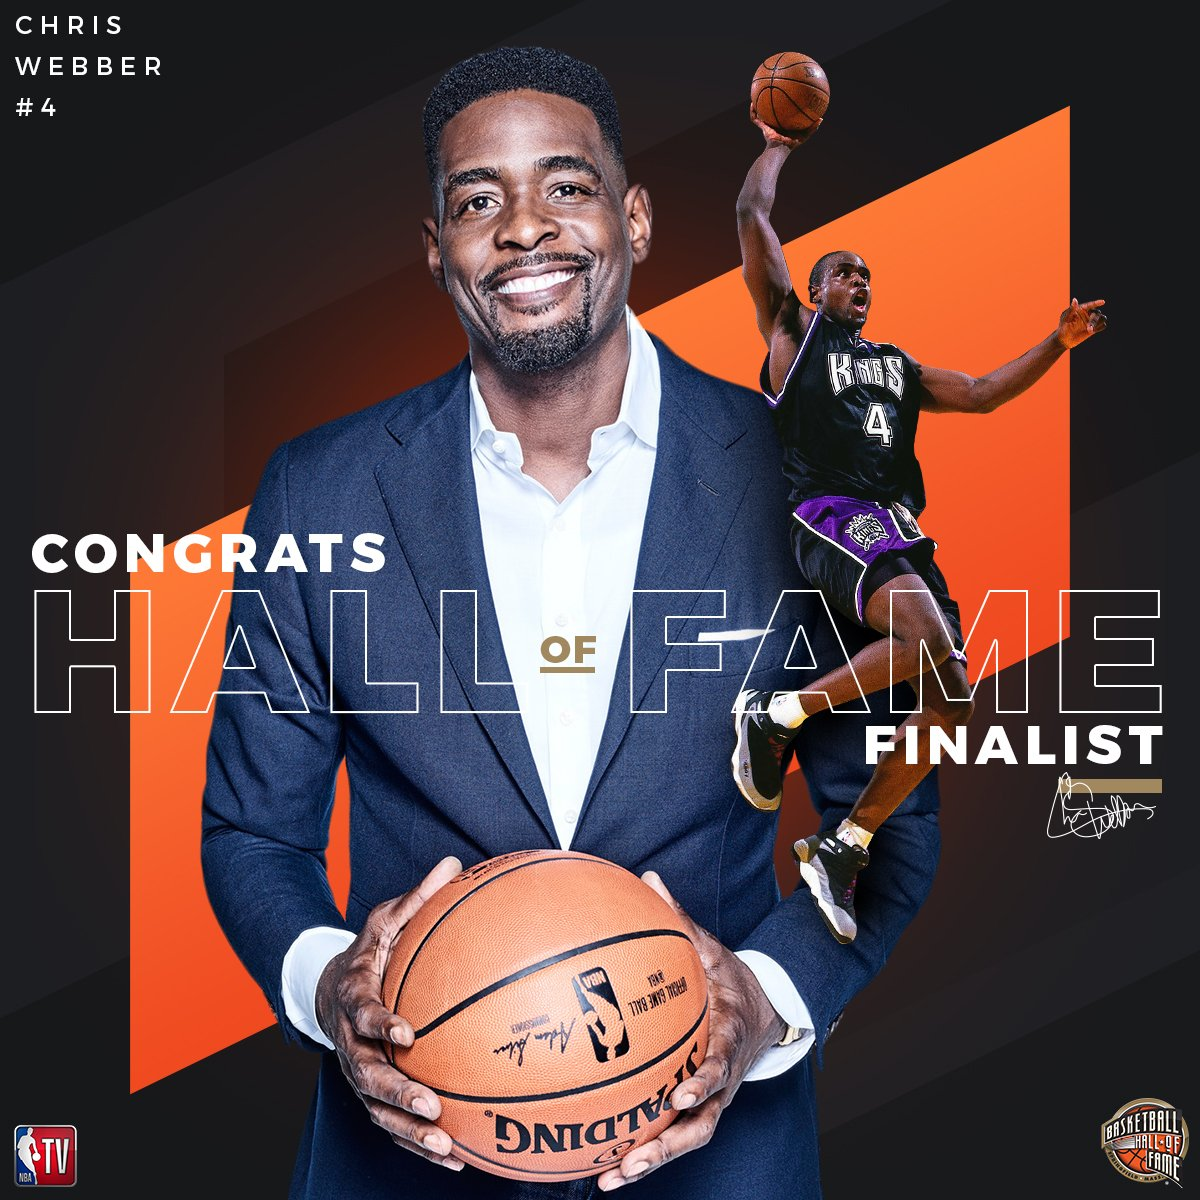 RT @NBATV: The Turner Sports family congratulates @realchriswebber on being named a @Hoophall #18HoopClass Finalist! https://t.co/ffG91JtQrP